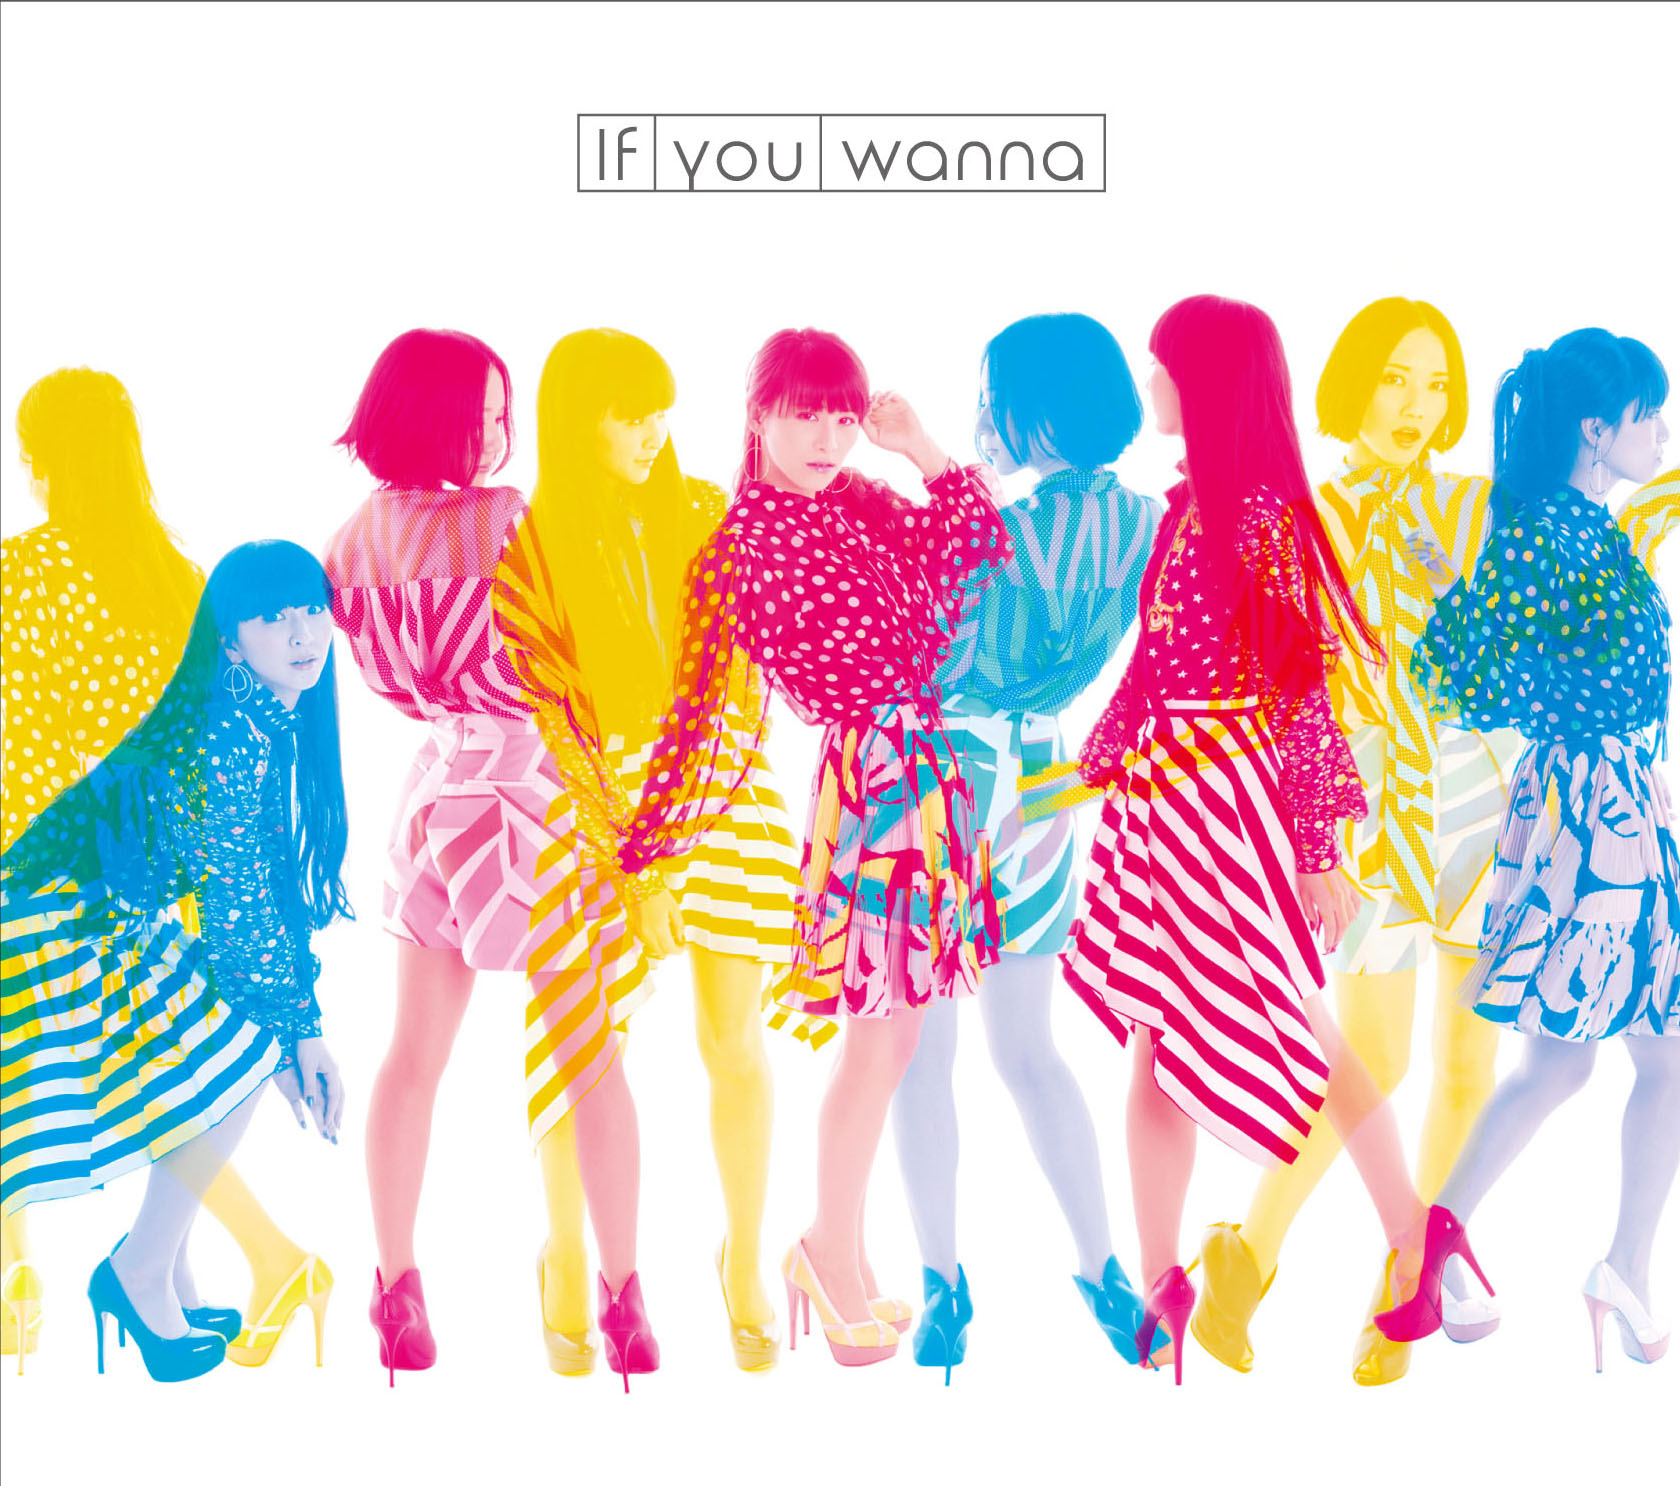 Perfume-If you wanna《CD+DVD 完全生產限定盤》